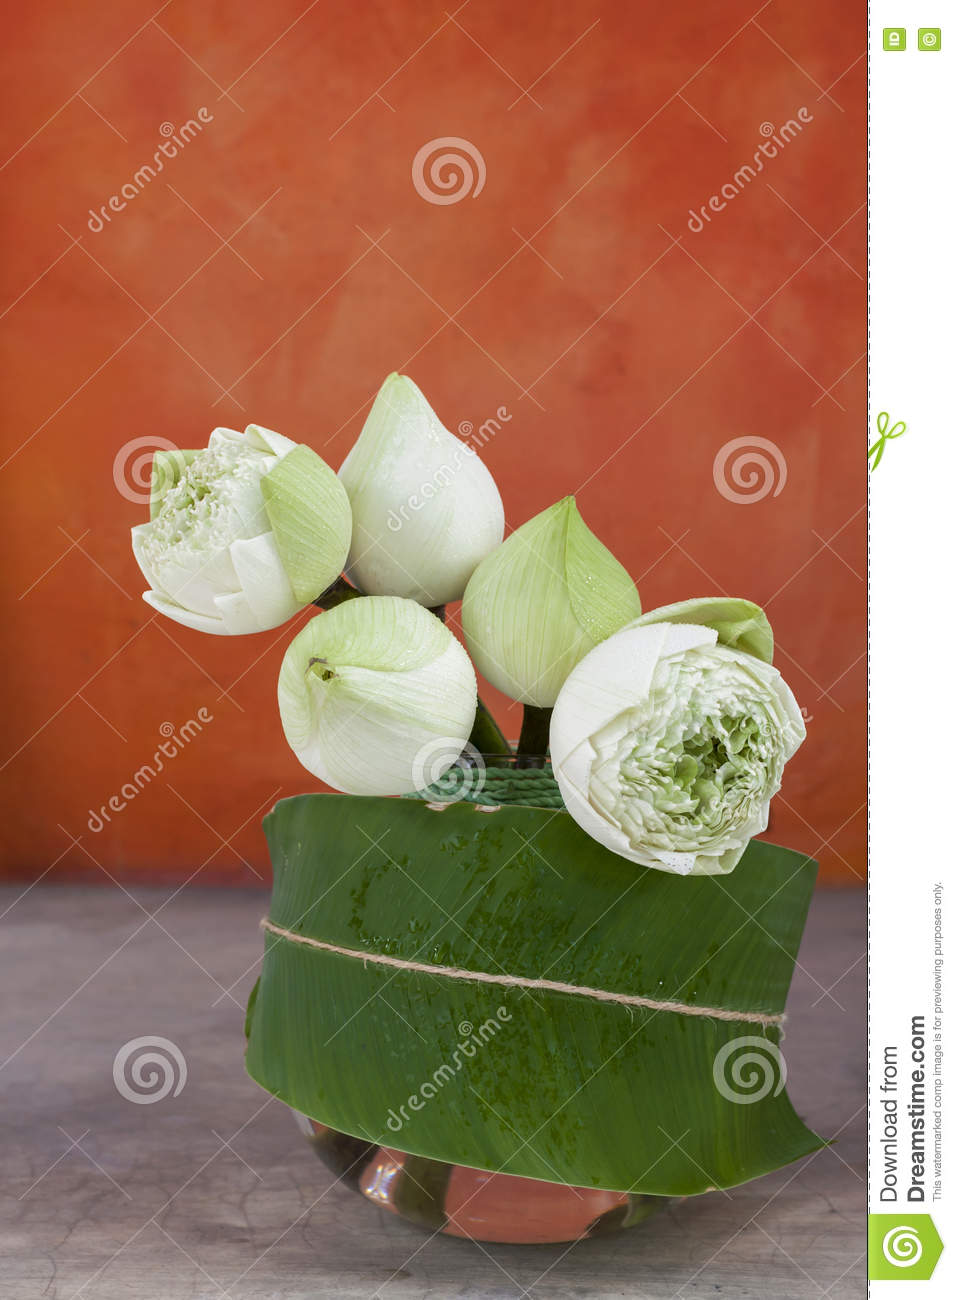 White Lotus Flower Stock Photo Image Of Floral Fresh 77652250